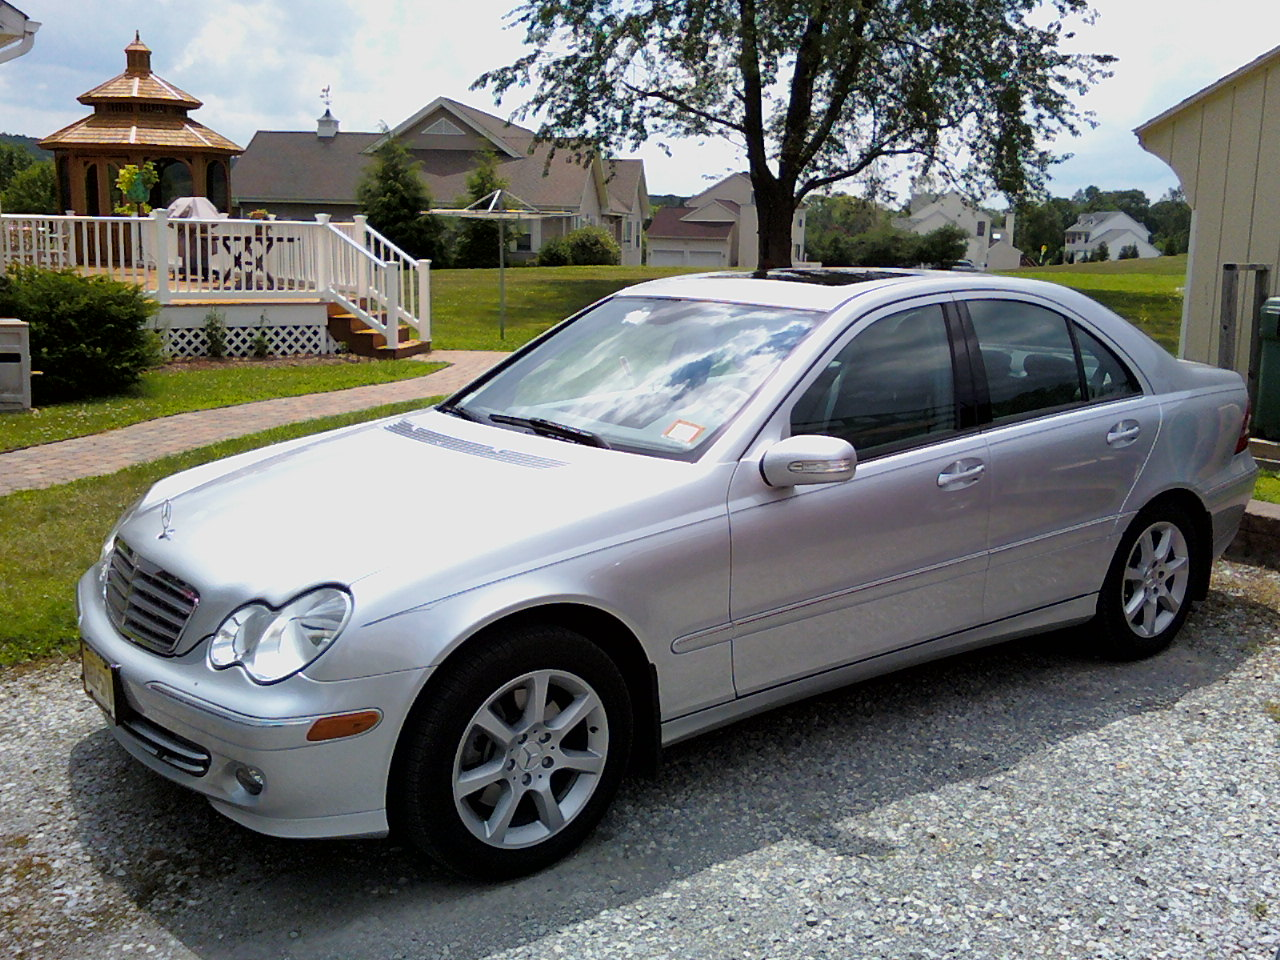 2007 Mercedes C280 Review http://www.cargurus.com/Cars/2007-Mercedes-Benz-C-Class-C280-Luxury-Pictures-t25020_pi18861413?picturesTabFilter=EXTERIOR